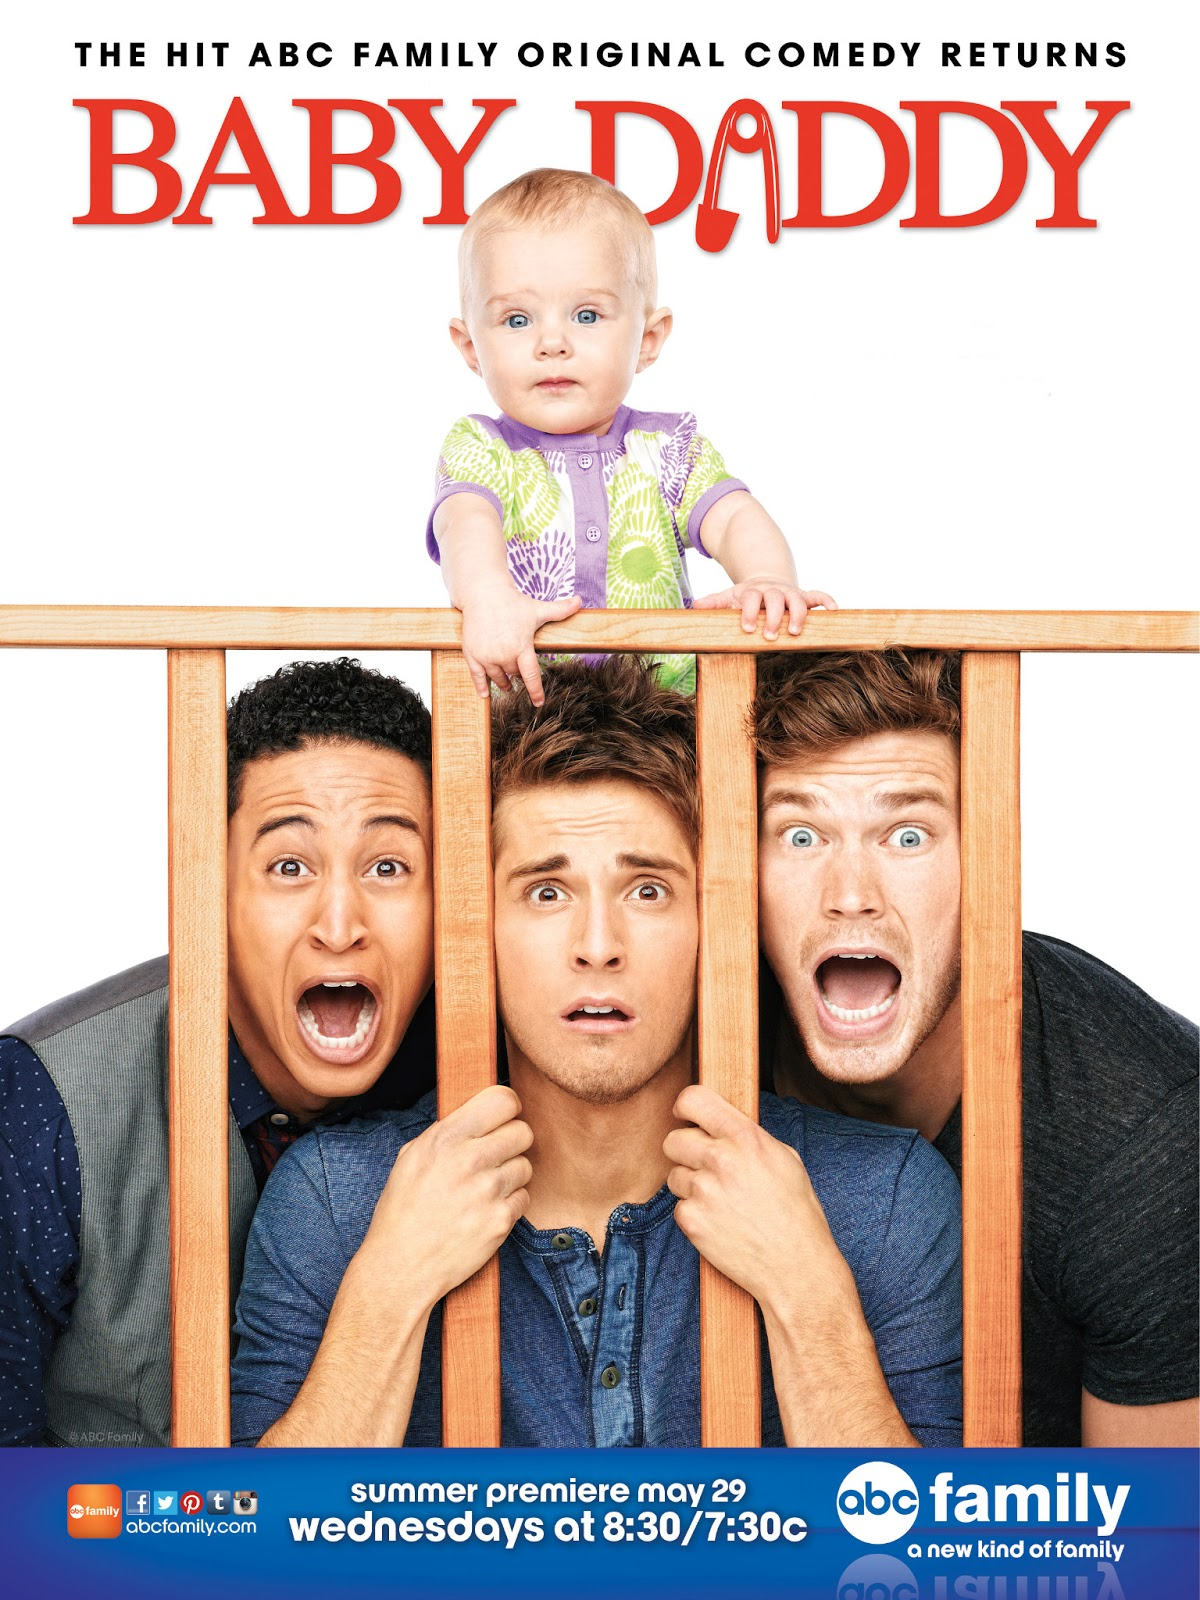 Download - Baby Daddy S02E03 HDTV 720p